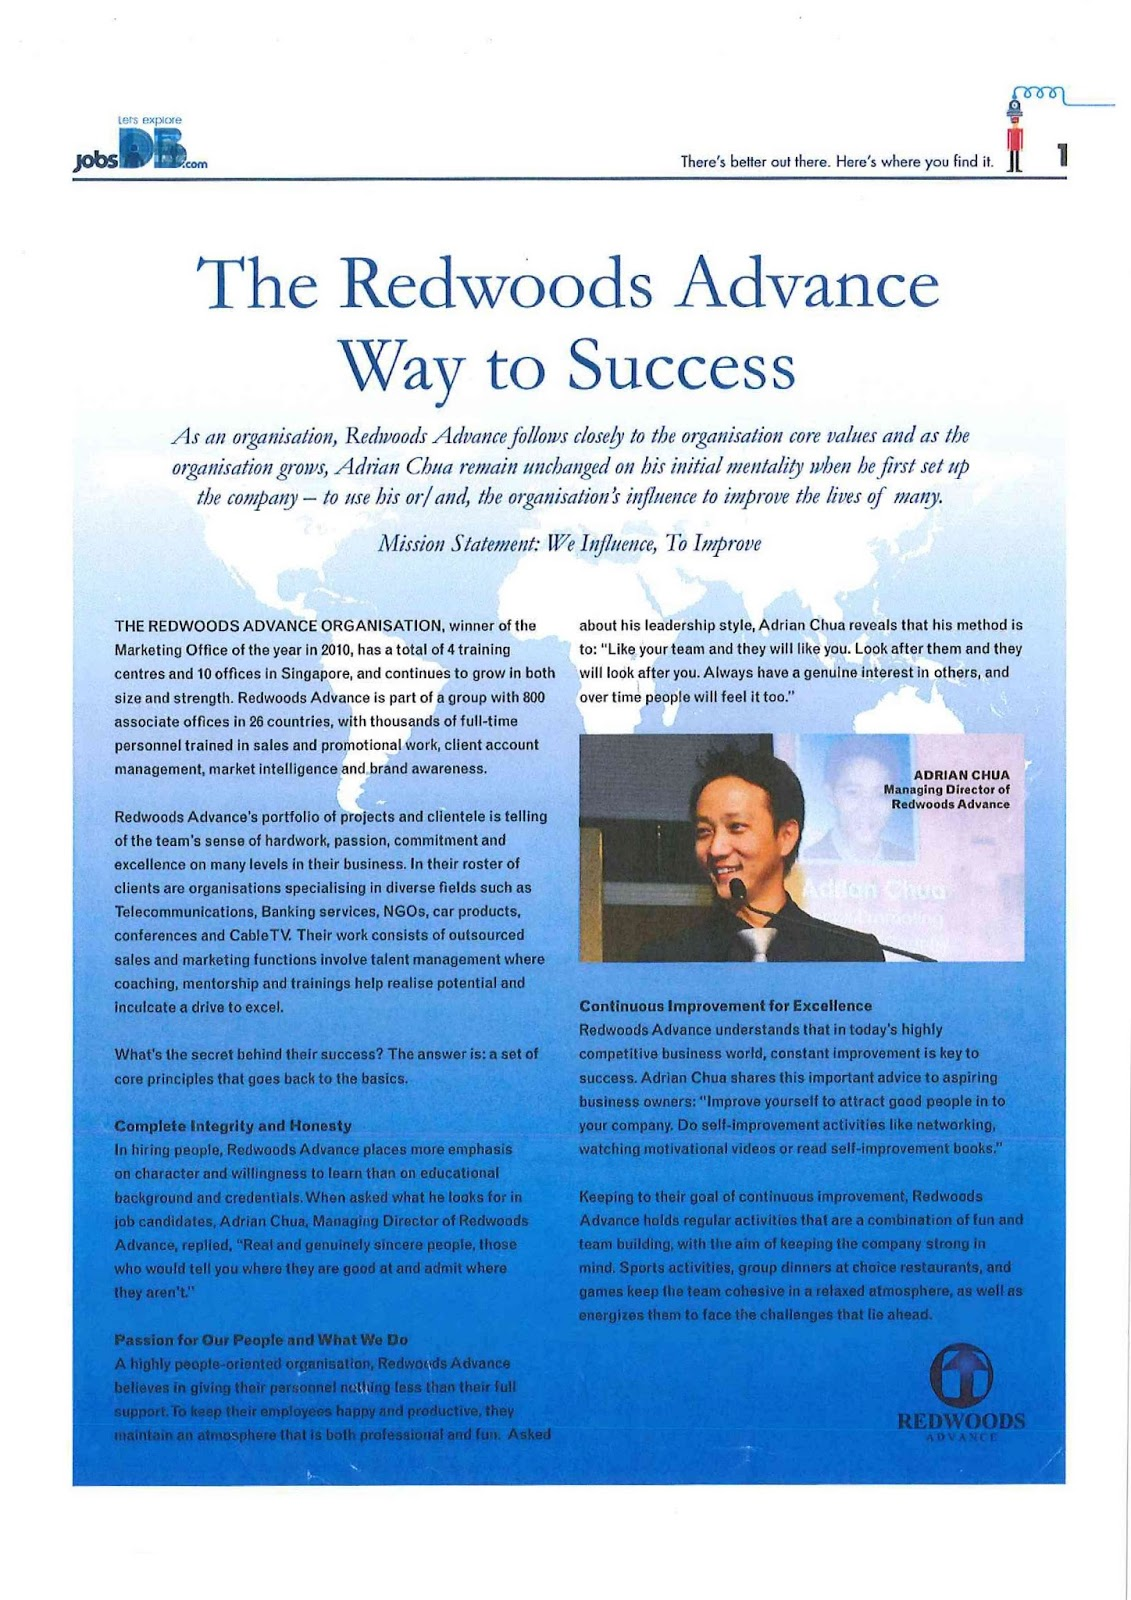 Redwoods Advance - Way to Success